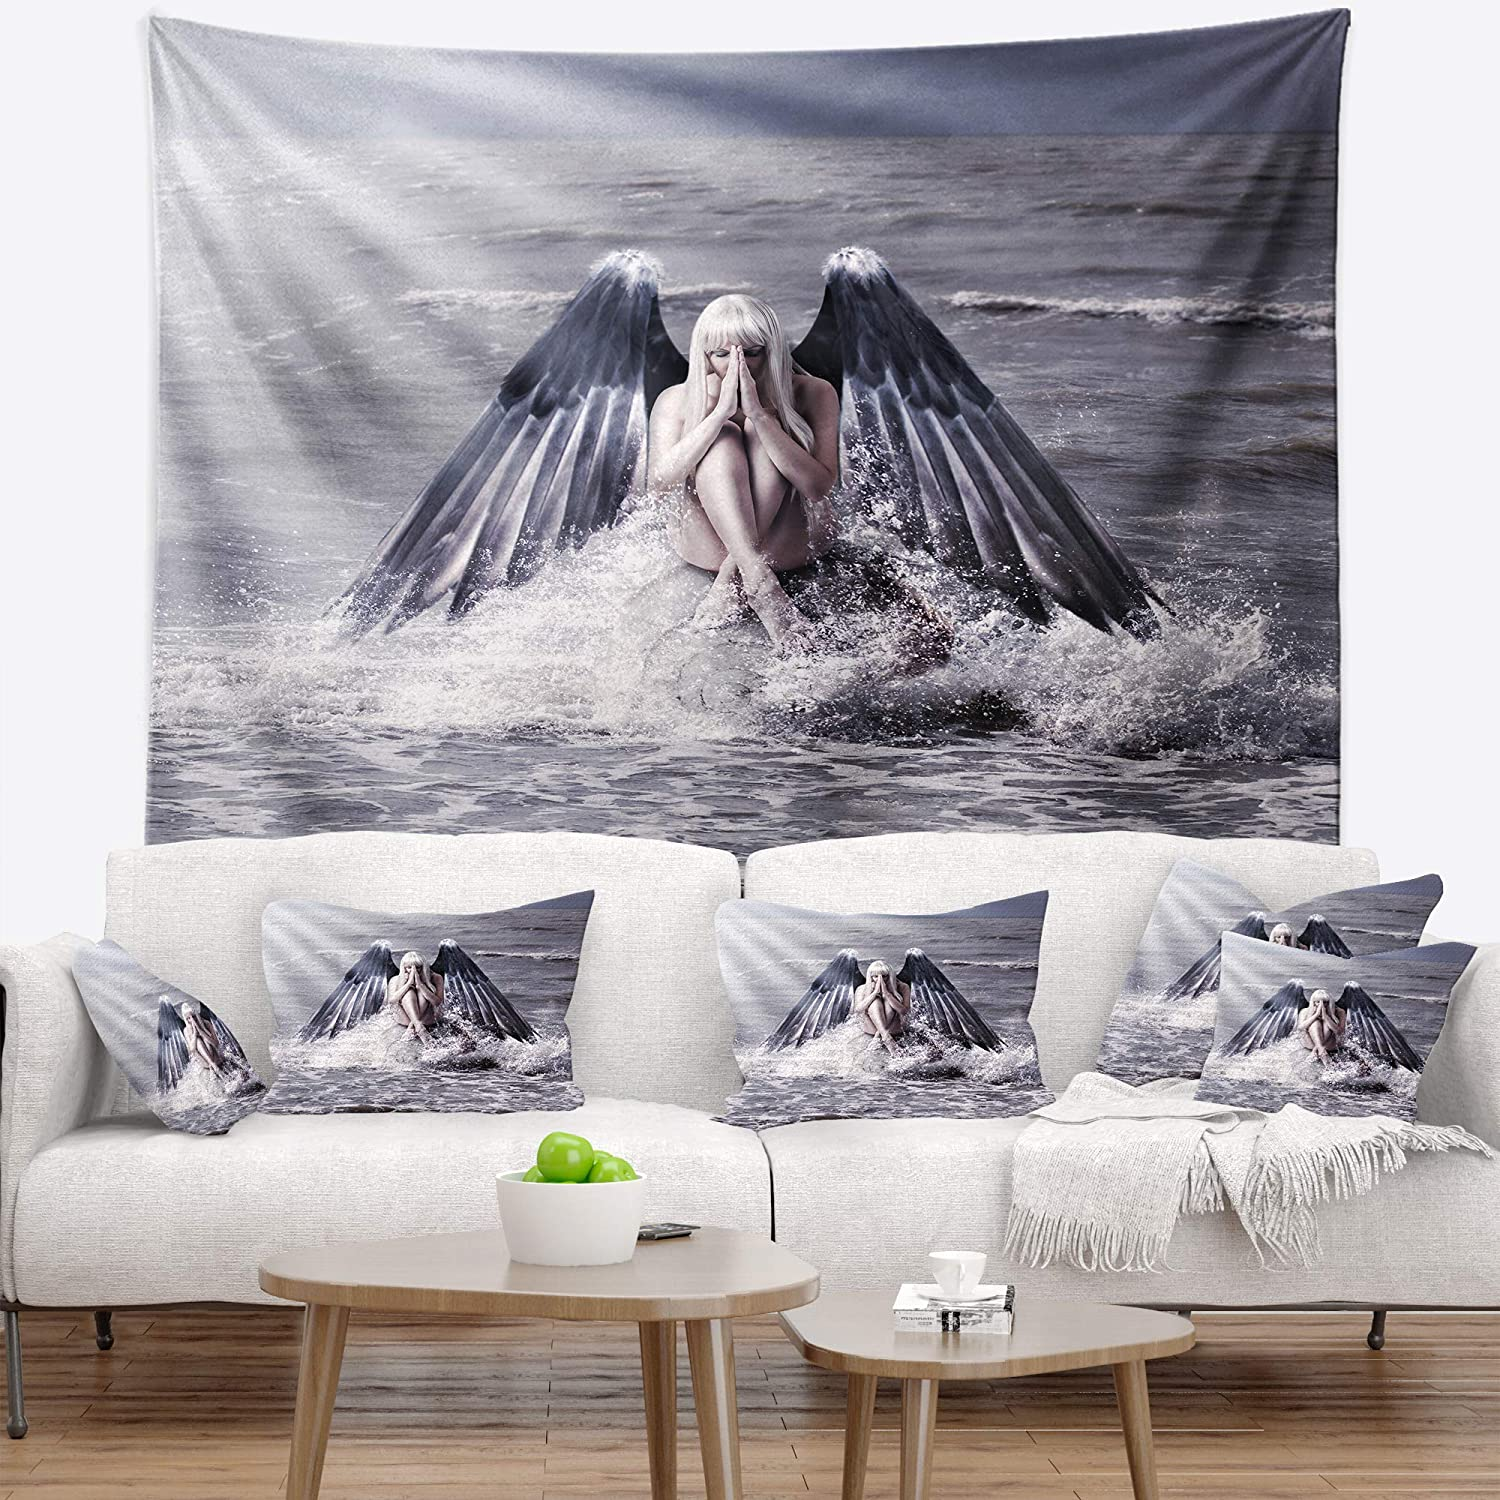 Designart TAP10471-50-60 ' Woman with Dark Angel Wings' Modern Beach Blanket Décor Art for Home and Office Wall Tapestry Large  50 in. x 60 in. in